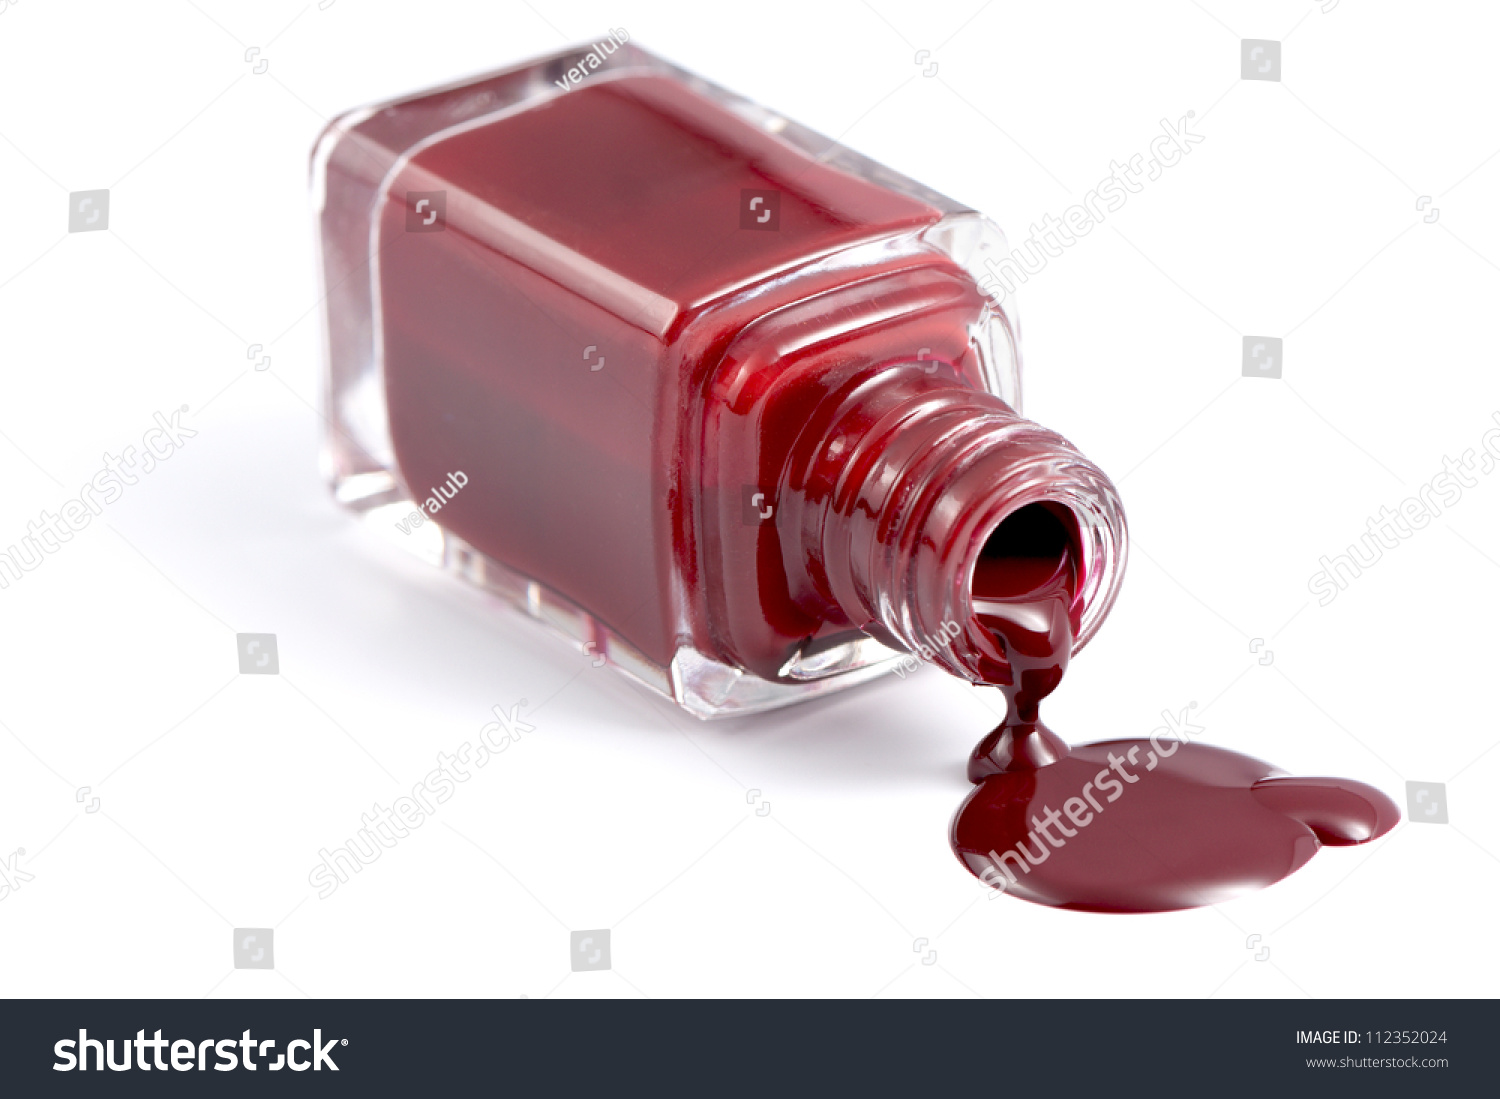 Bottle Beautiful Deep Red Nail Polish Stock Photo (Royalty Free ...